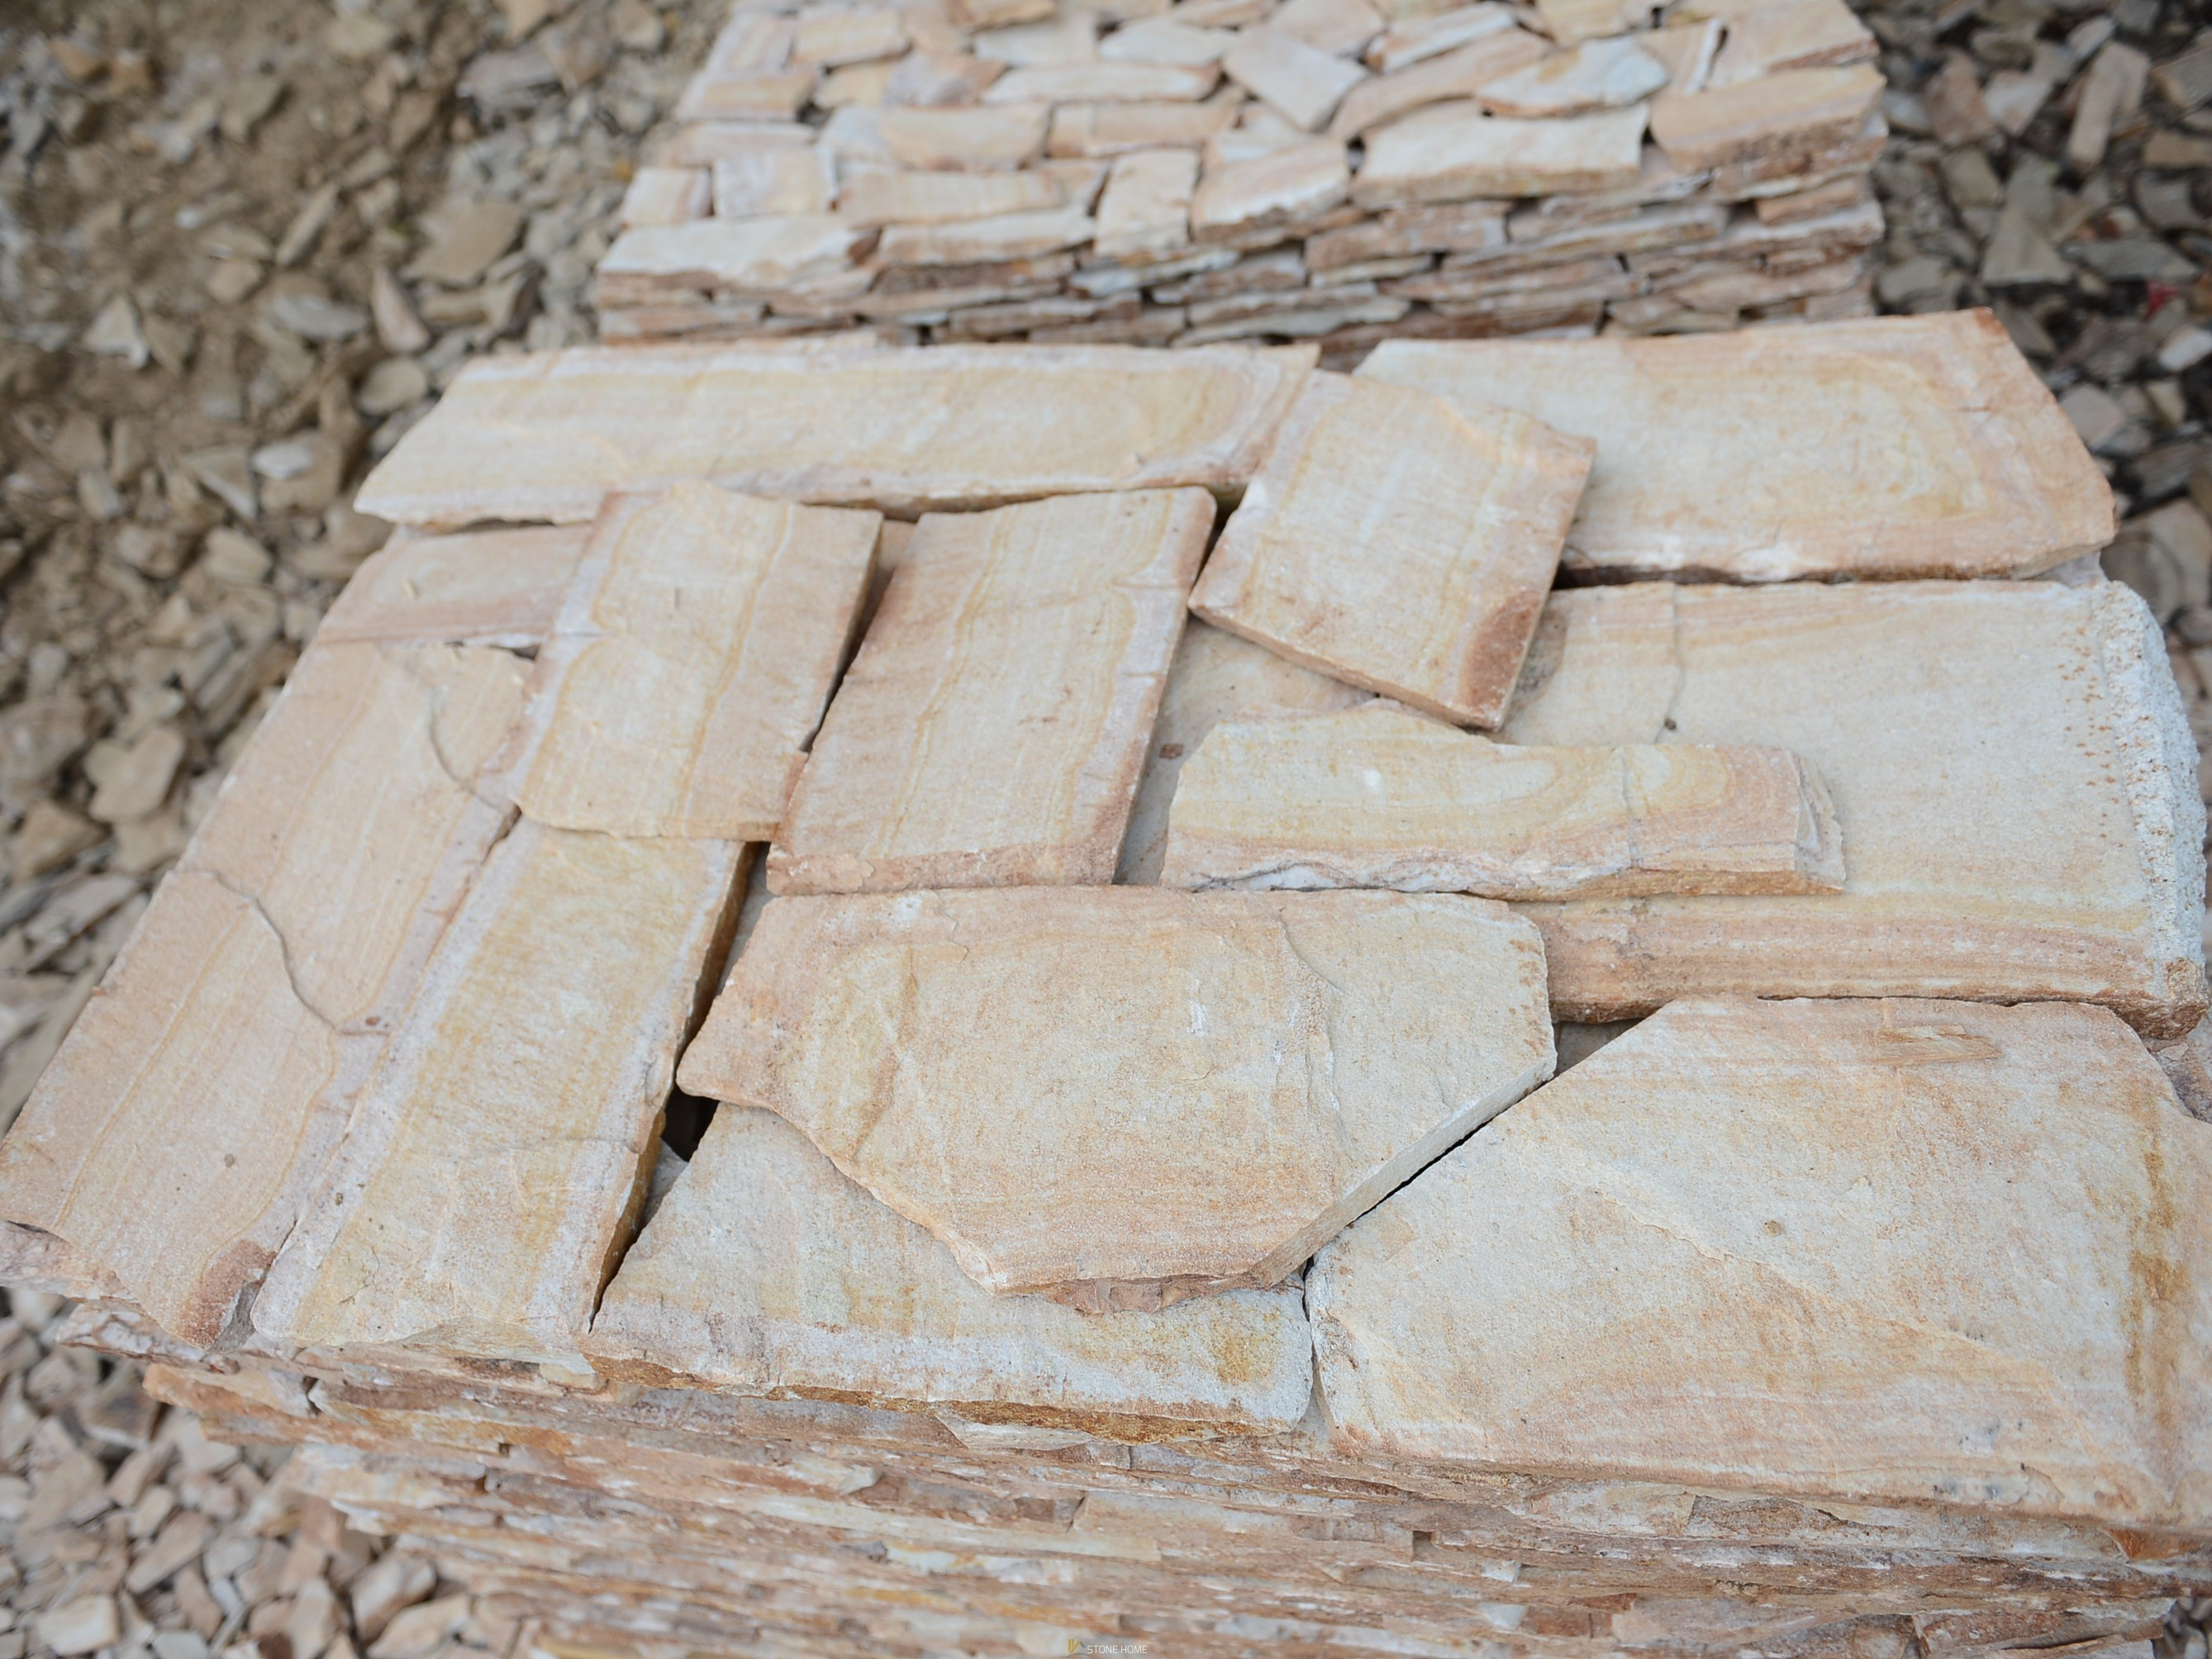 Polygonal plates Unformed Solevo - natural stone Gneiss